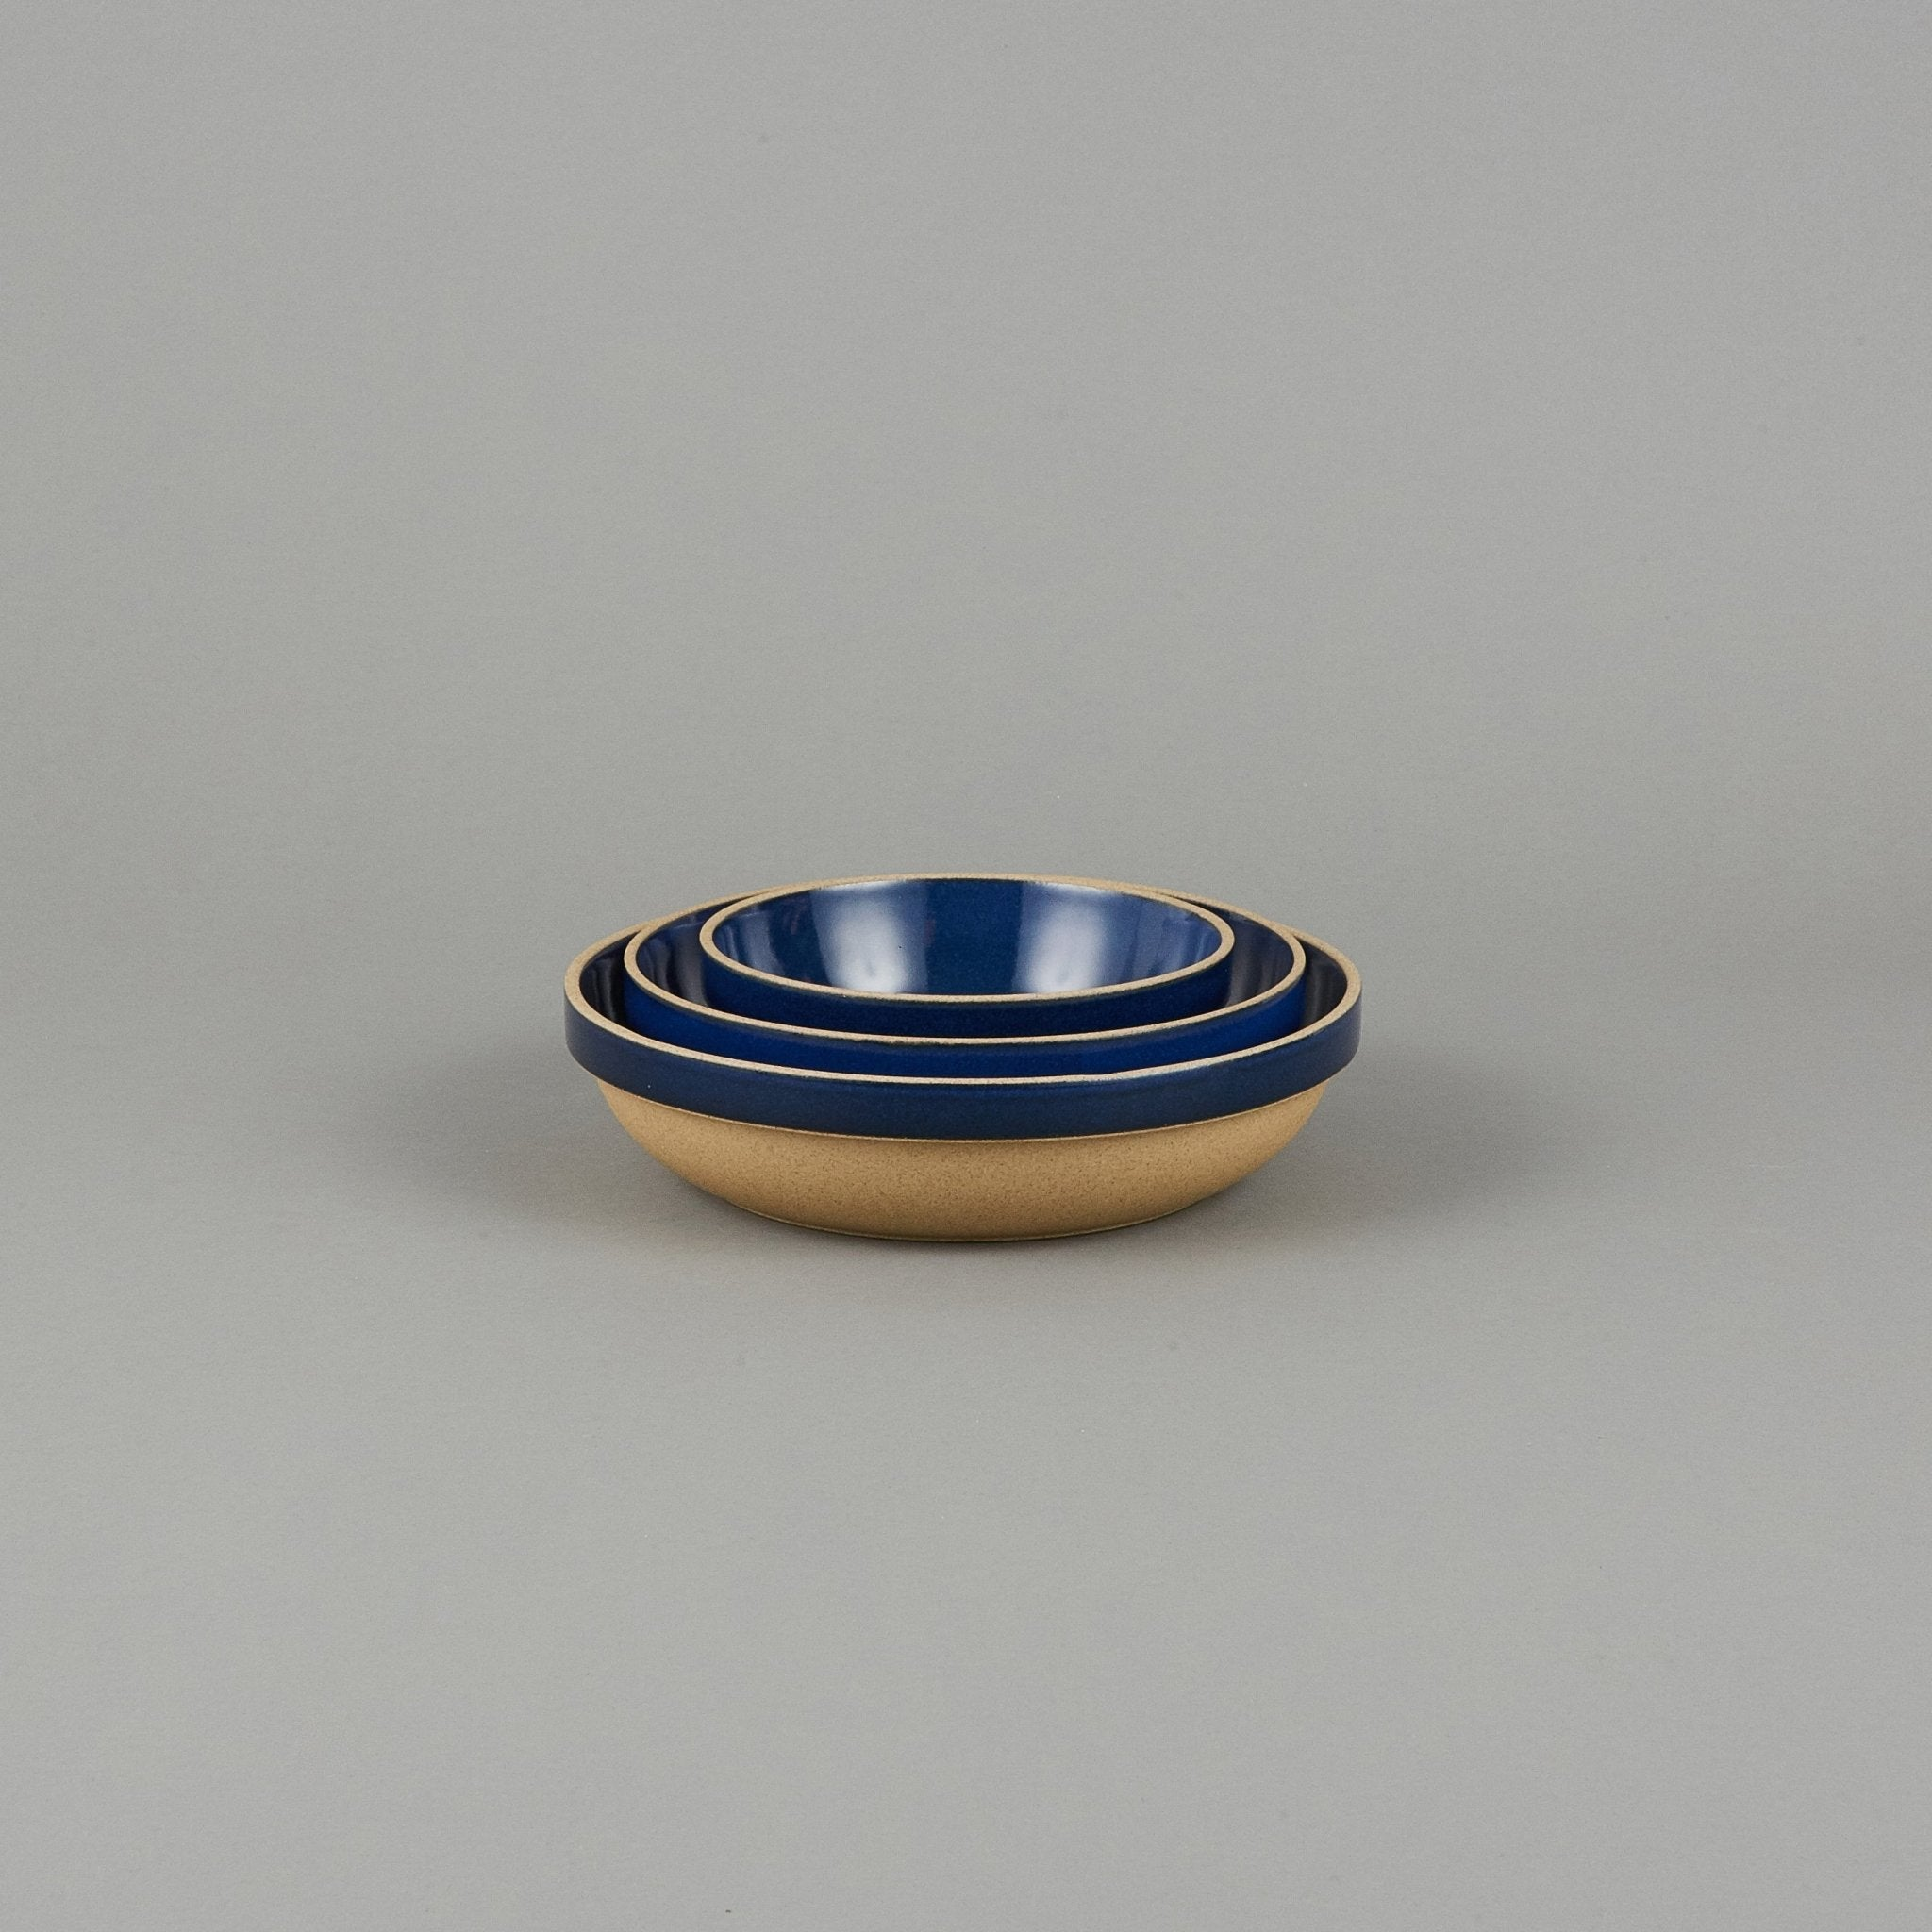 "HPK031 - Round Bowl Gloss Blue ø 5.5/8"" - tortoise general store"